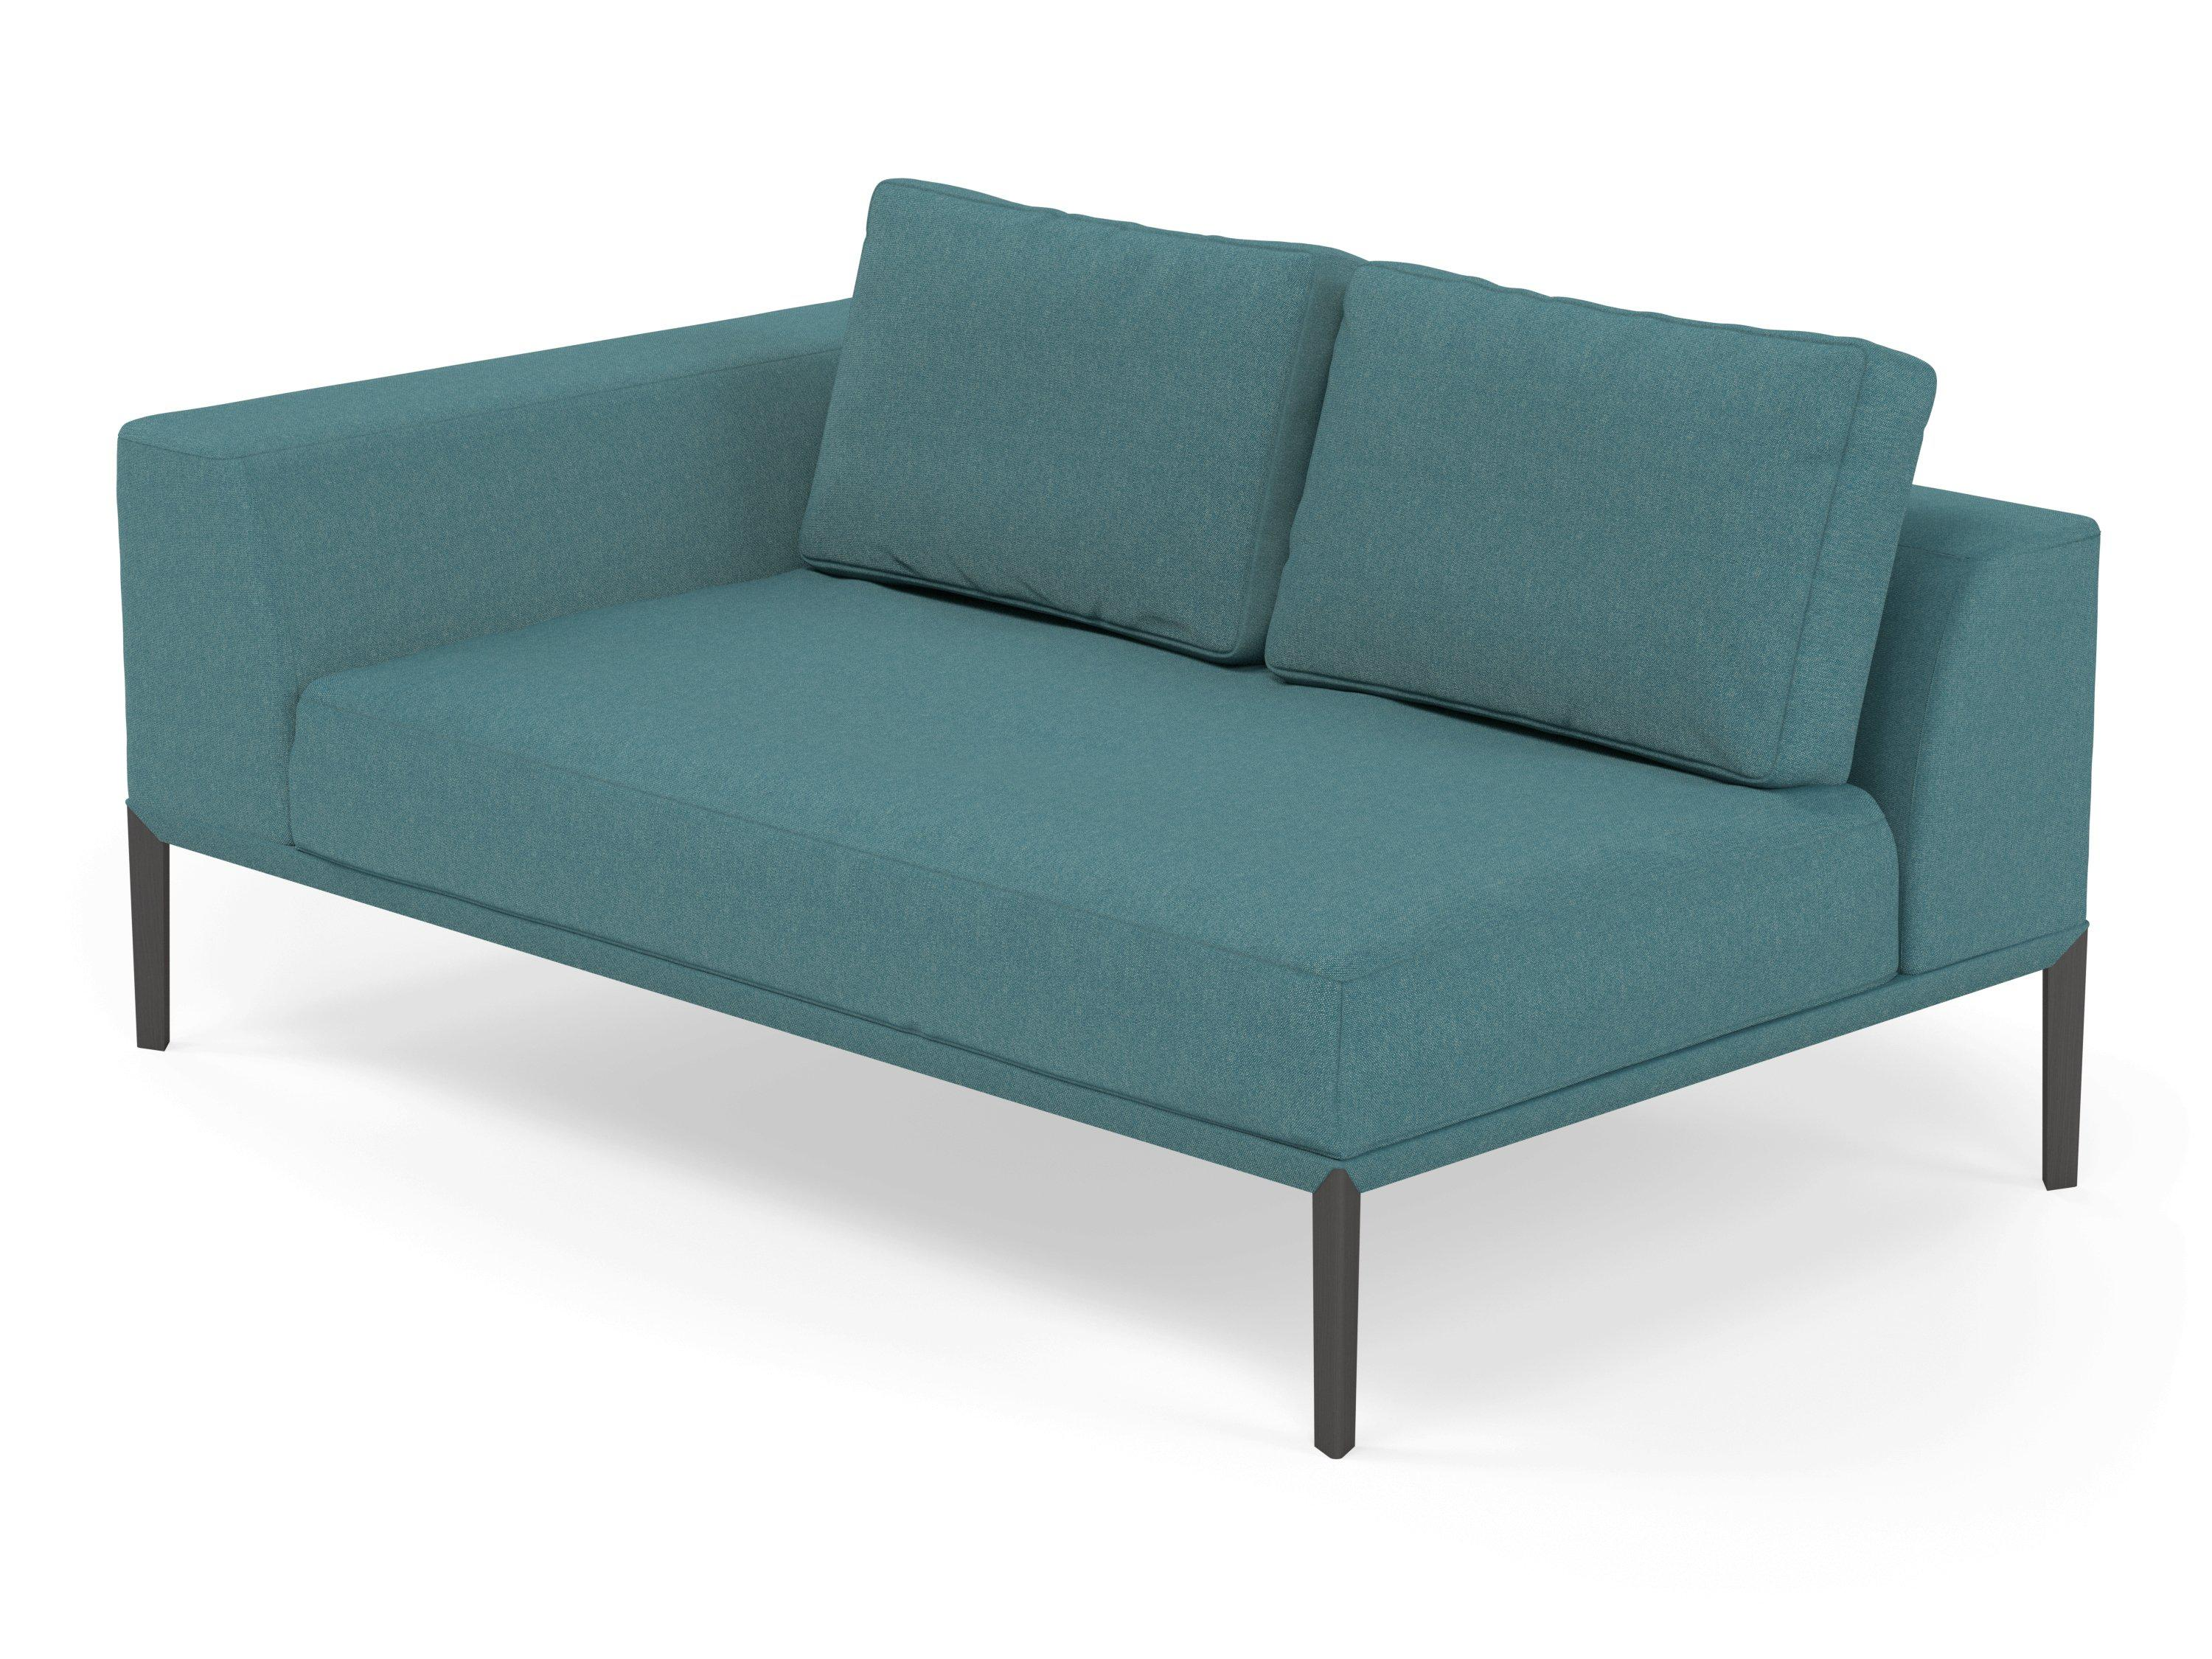 Modern 2 Seater Chaise Lounge Style Sofa with Right Armrest in Teal Bl